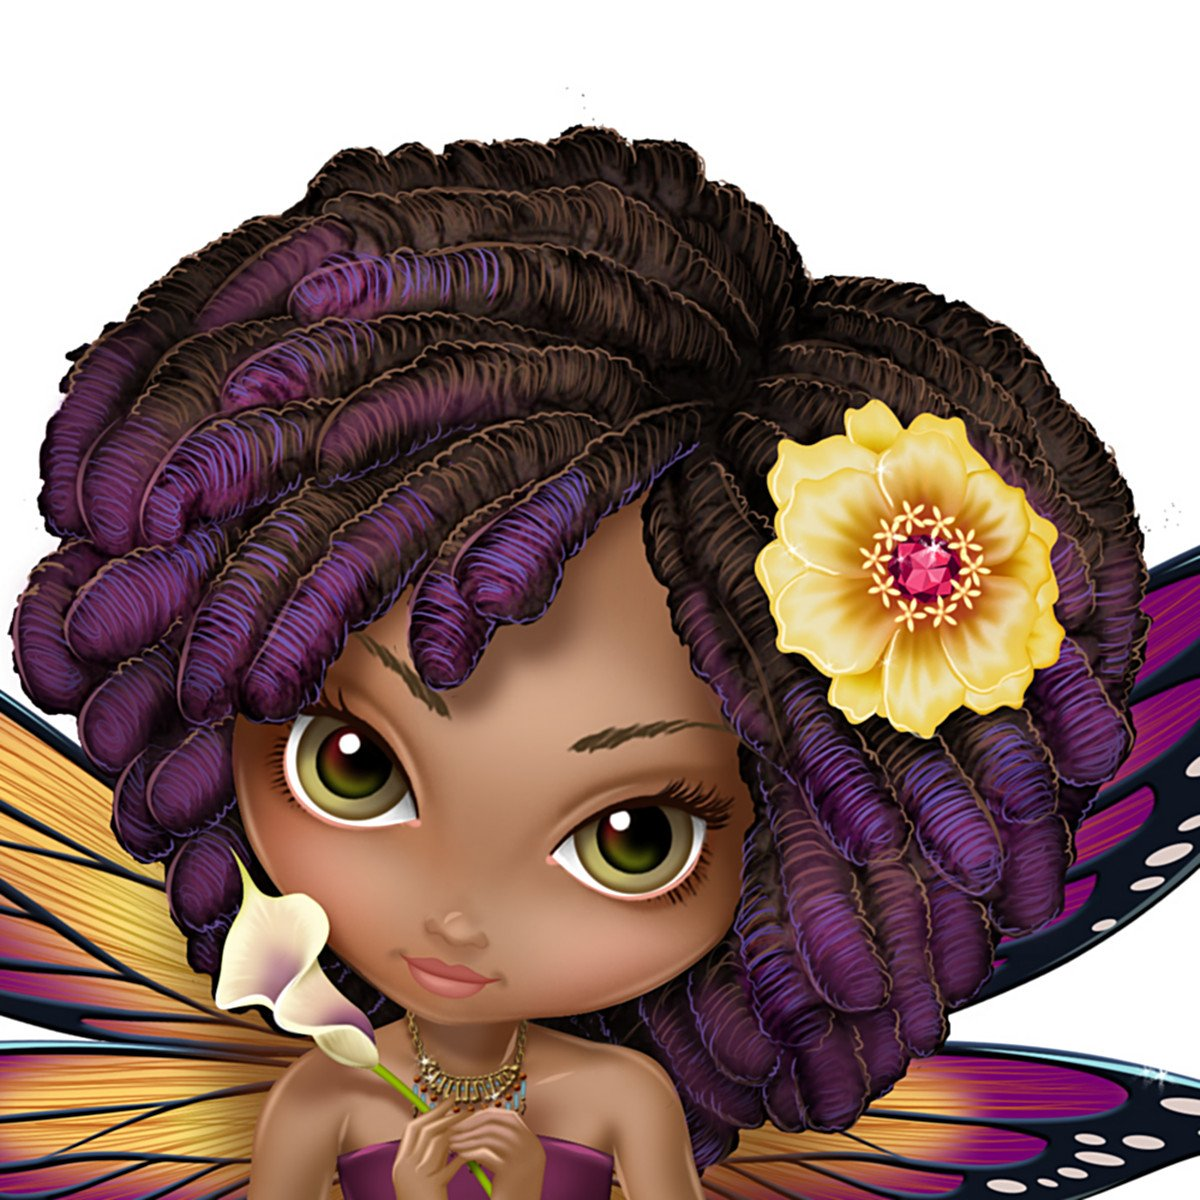 Amazon jasmine becket griffith african american fairy figurine amazon jasmine becket griffith african american fairy figurine with butterfly wings by the hamilton collection home kitchen izmirmasajfo